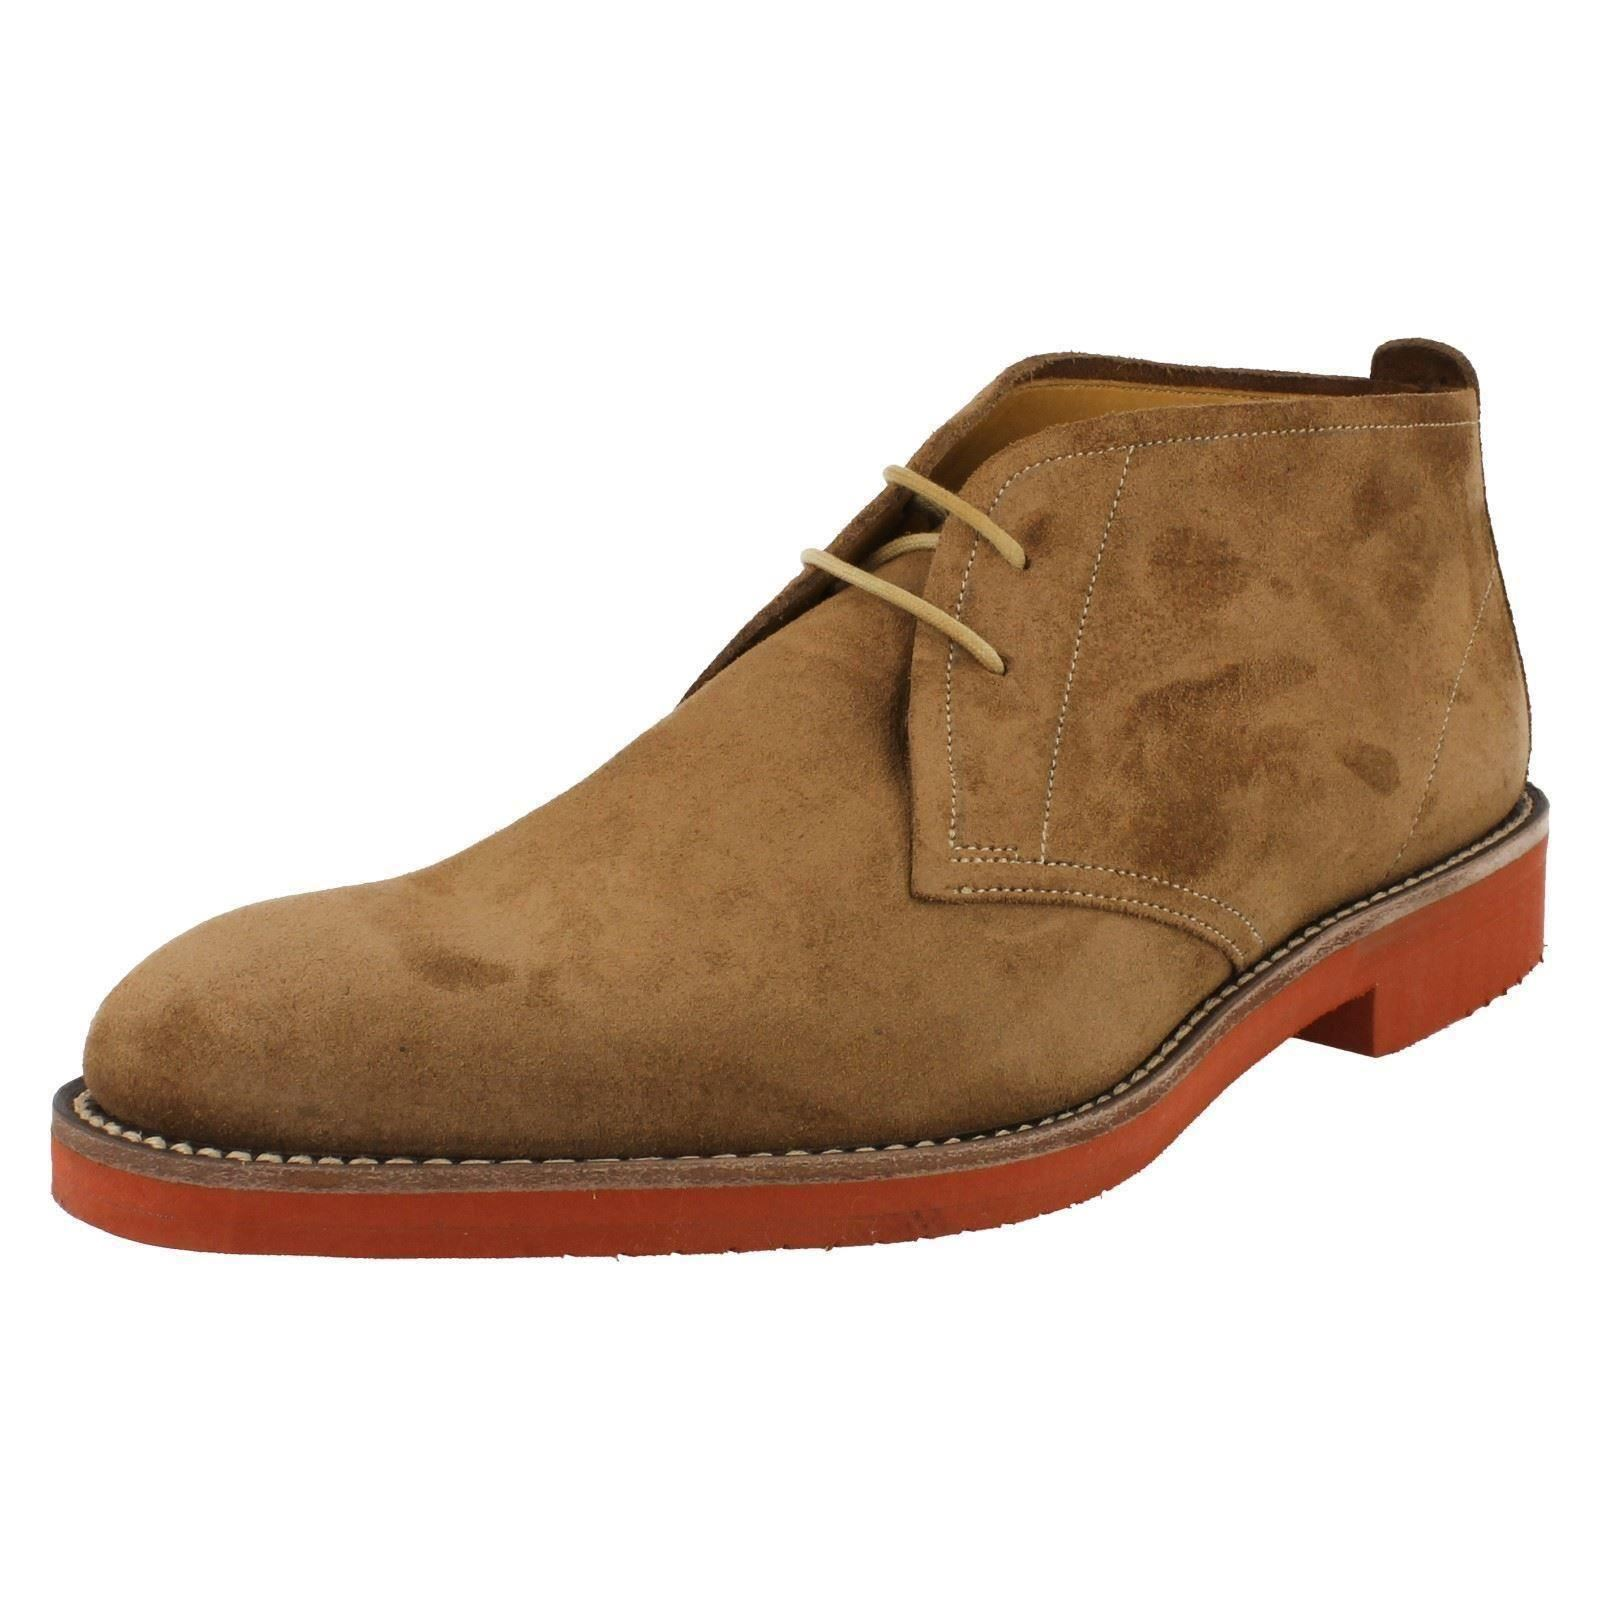 Herren Loake Braun Oiled Suede Casual Lace Up Ankle Stiefel Lennox 9215b0